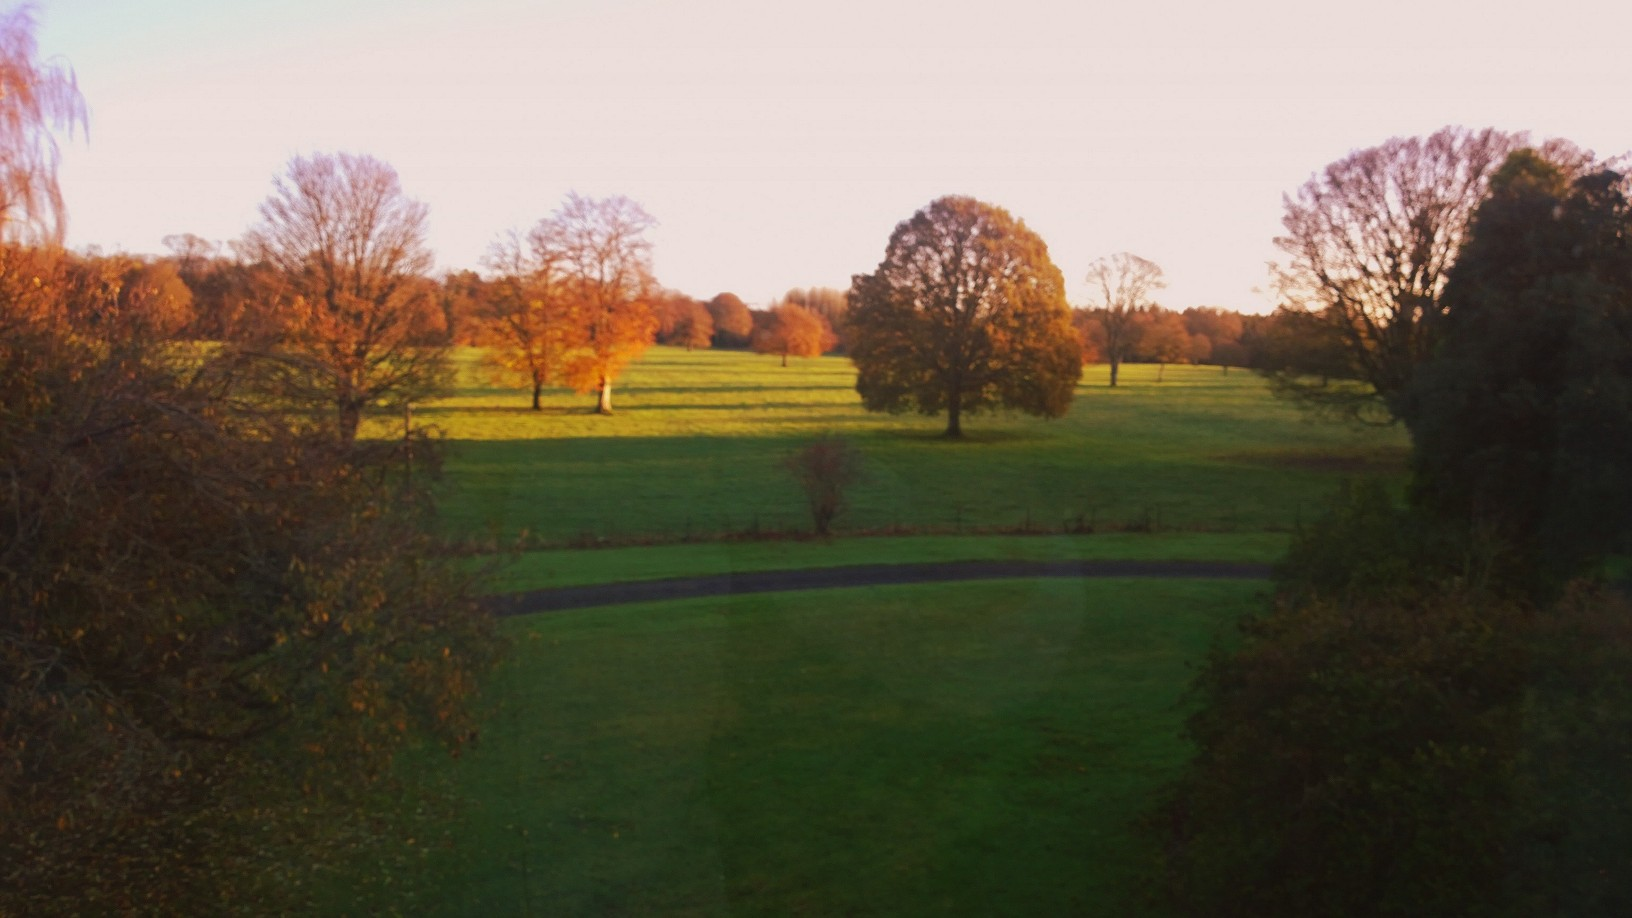 A view from my bedroom window but sadly there are no horses at home since I have left.